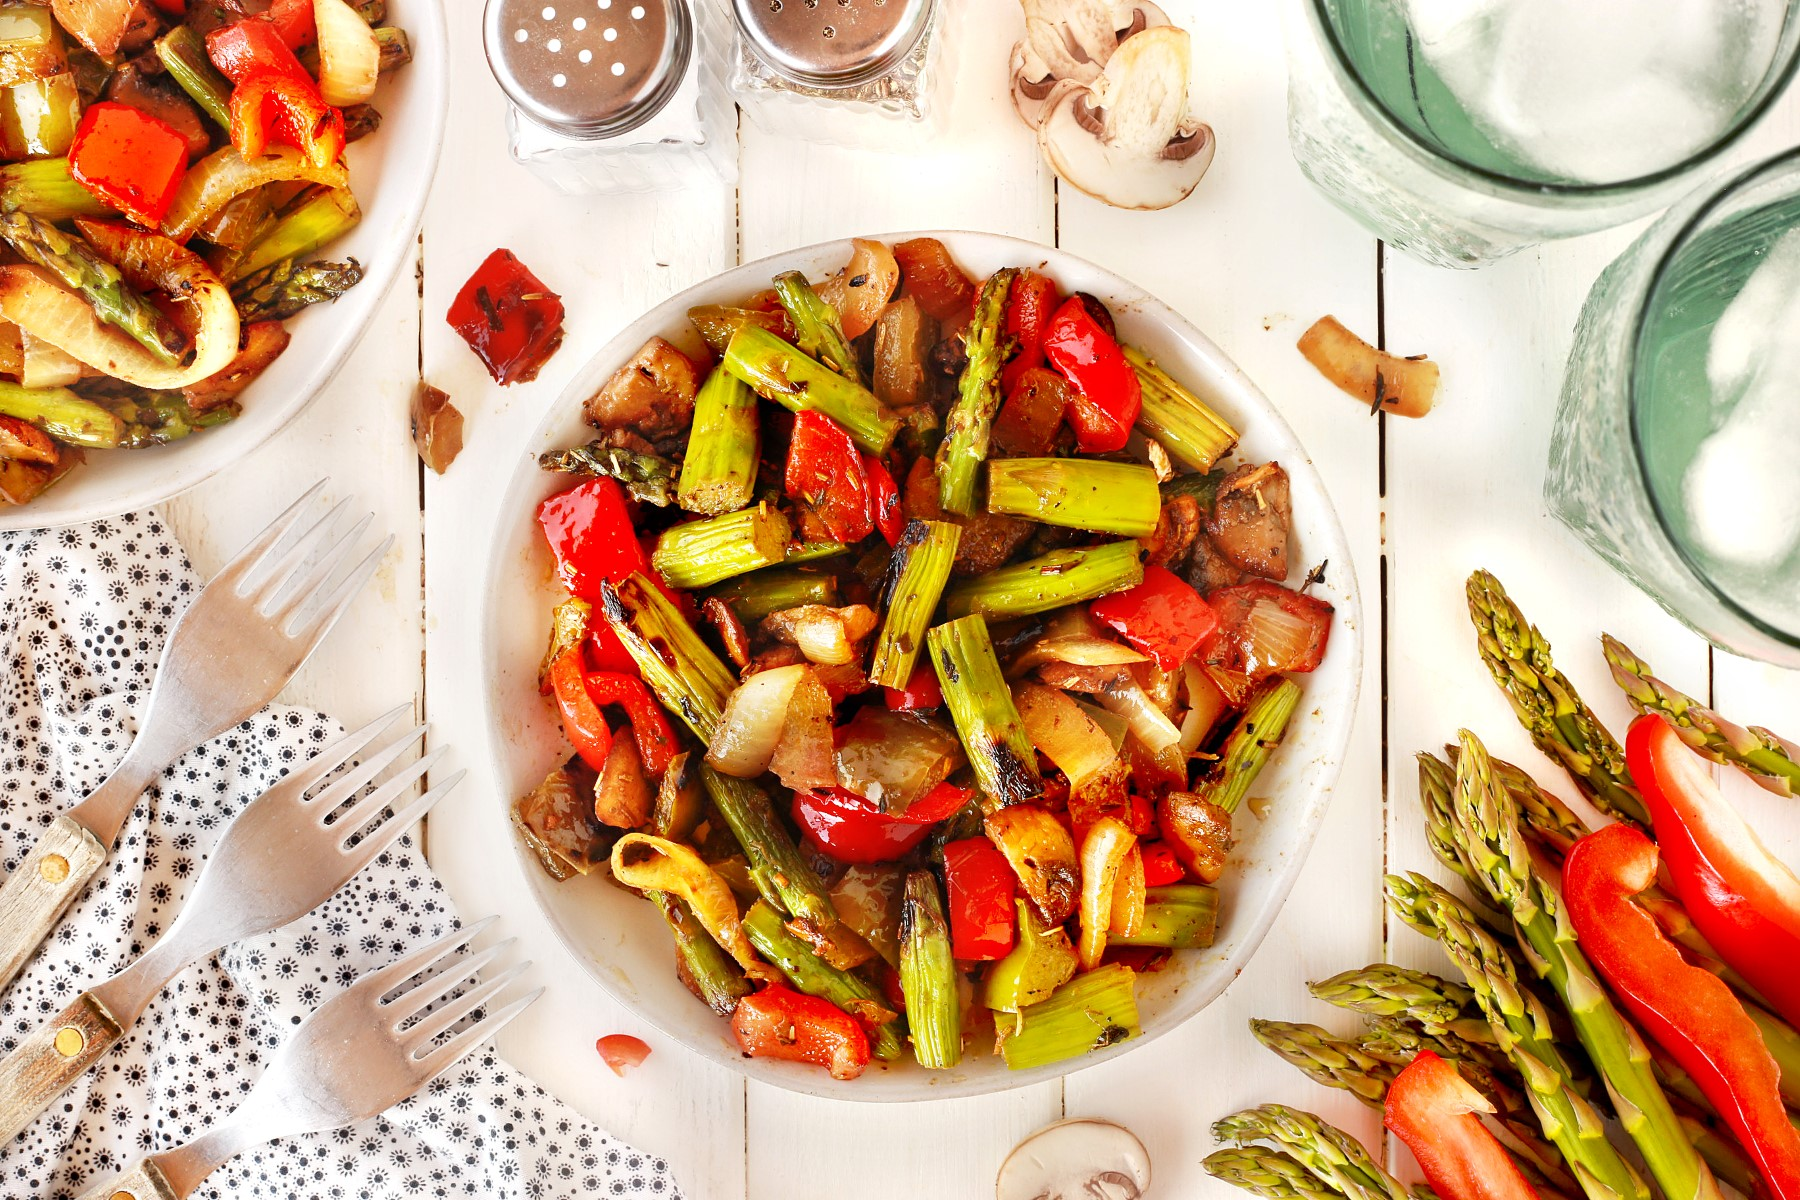 BBQ wok vegetables in a white serving bowl on a table with forks and fresh vegetables around.